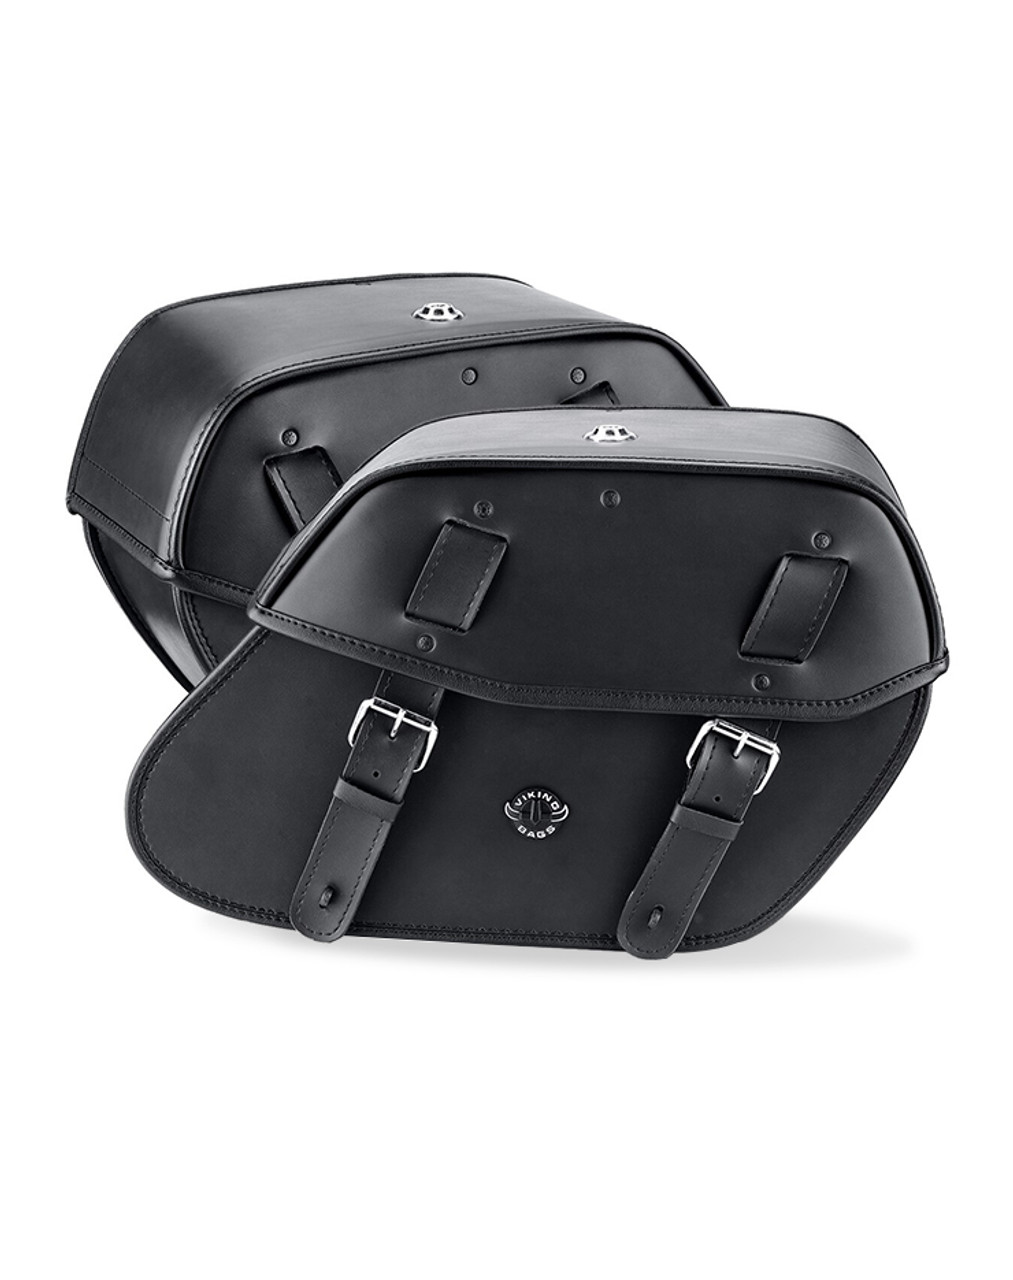 Viking Odin Medium Motorcycle Saddlebags For Harley Softail Night Train FXSTB Both Bags View